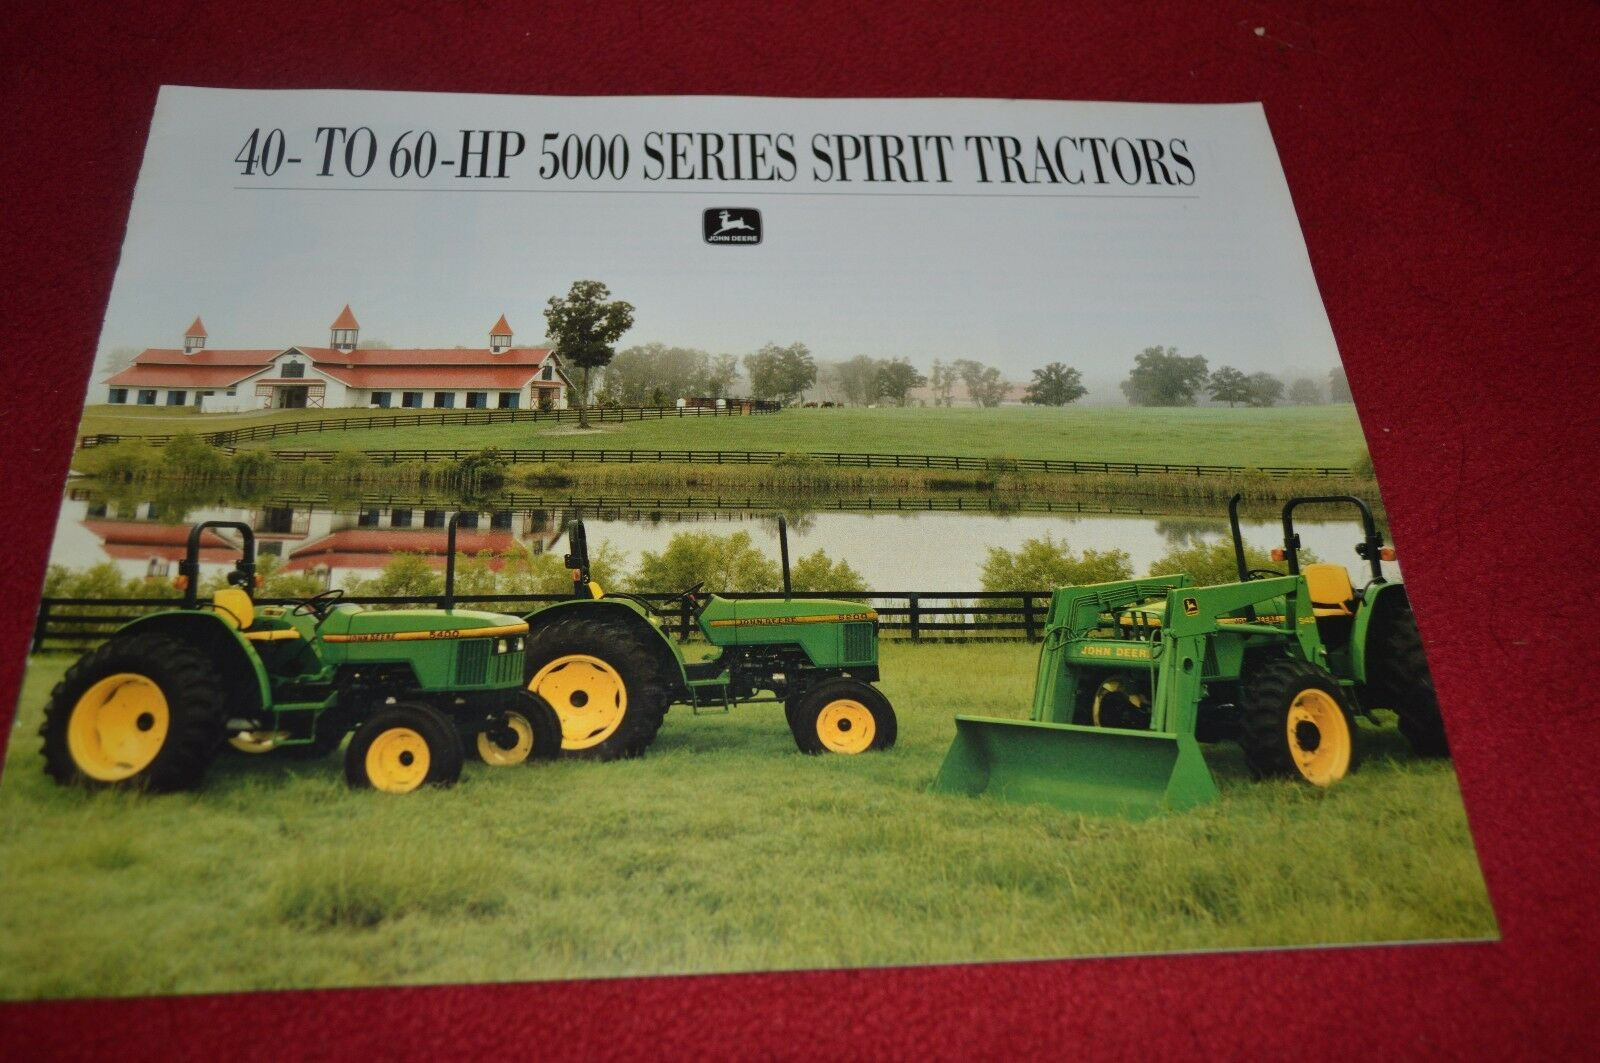 John Deere 5200 5300 5400 Tractor Dealer's Brochure AMIL8 94-01 1 of 1FREE  Shipping ...